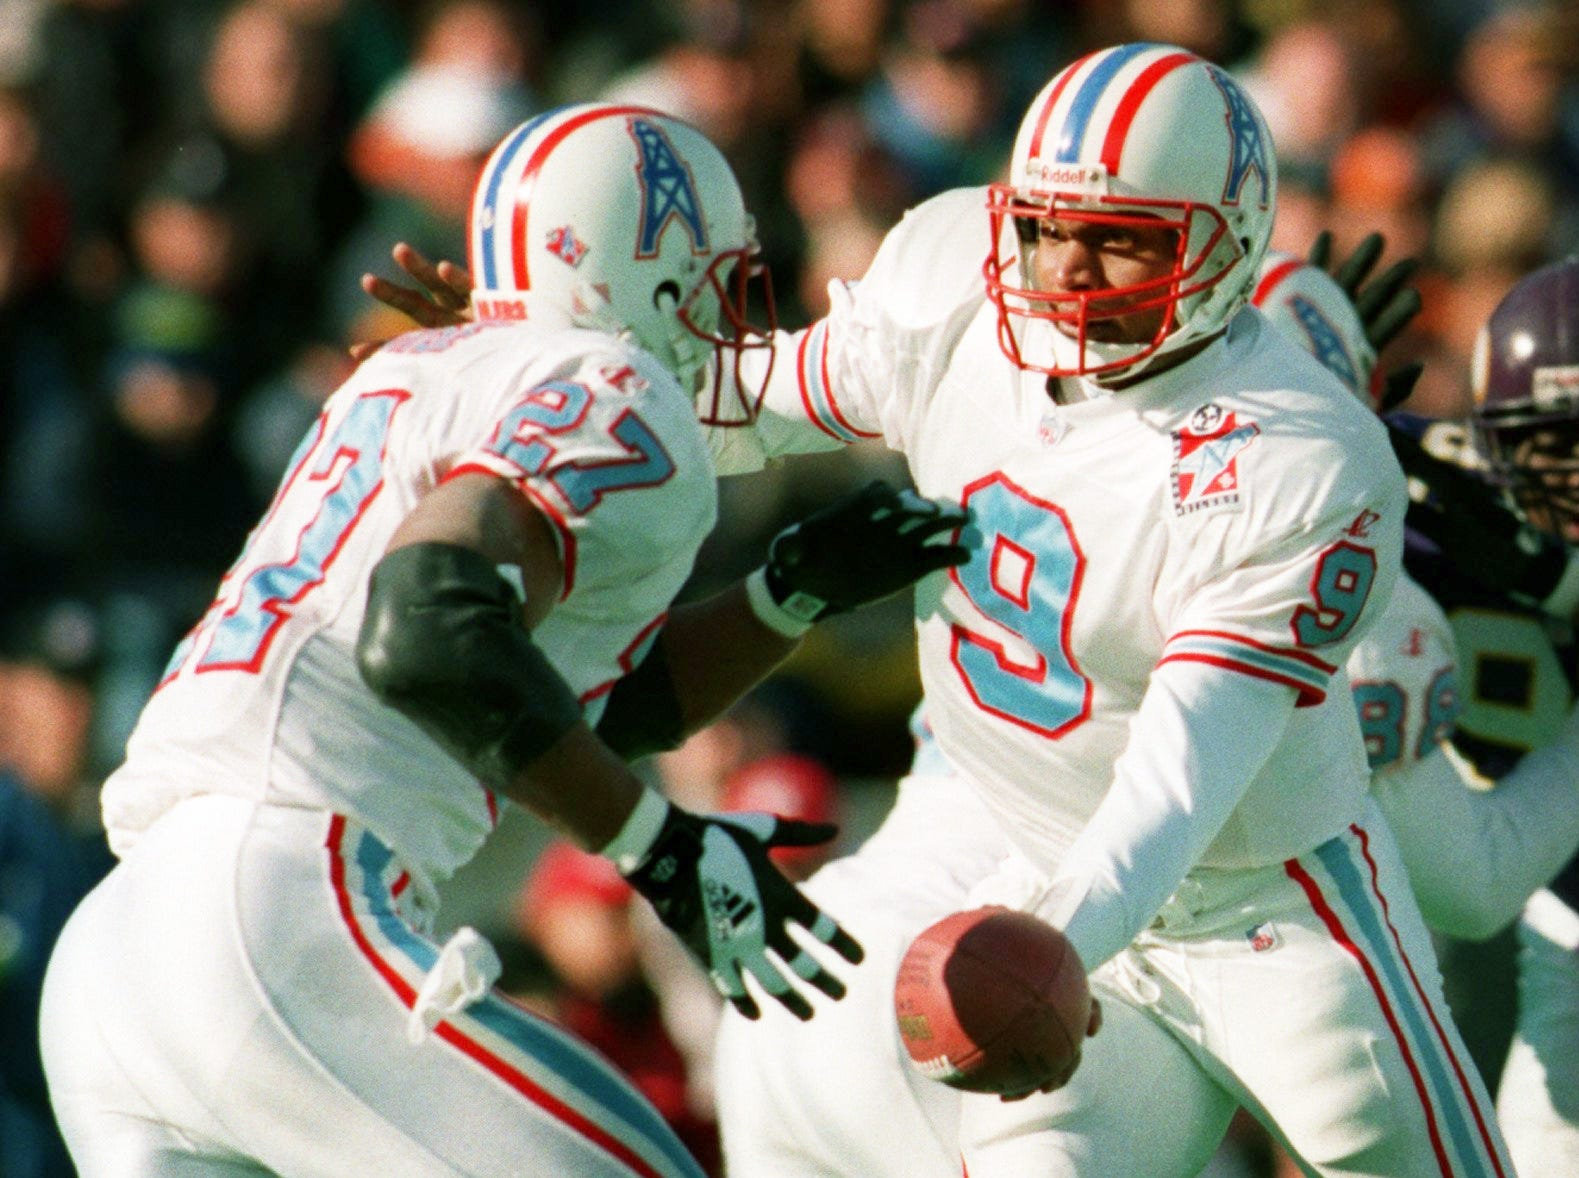 Tennessee Oilers quarterback Steve McNair (9) hands off the ball to back Eddie George during the game against the Minnesota Vikings Dec. 26, 1998. The Oilers lost the game 26-16 at Vanderbilt Stadium to finishes the season at 8-8.